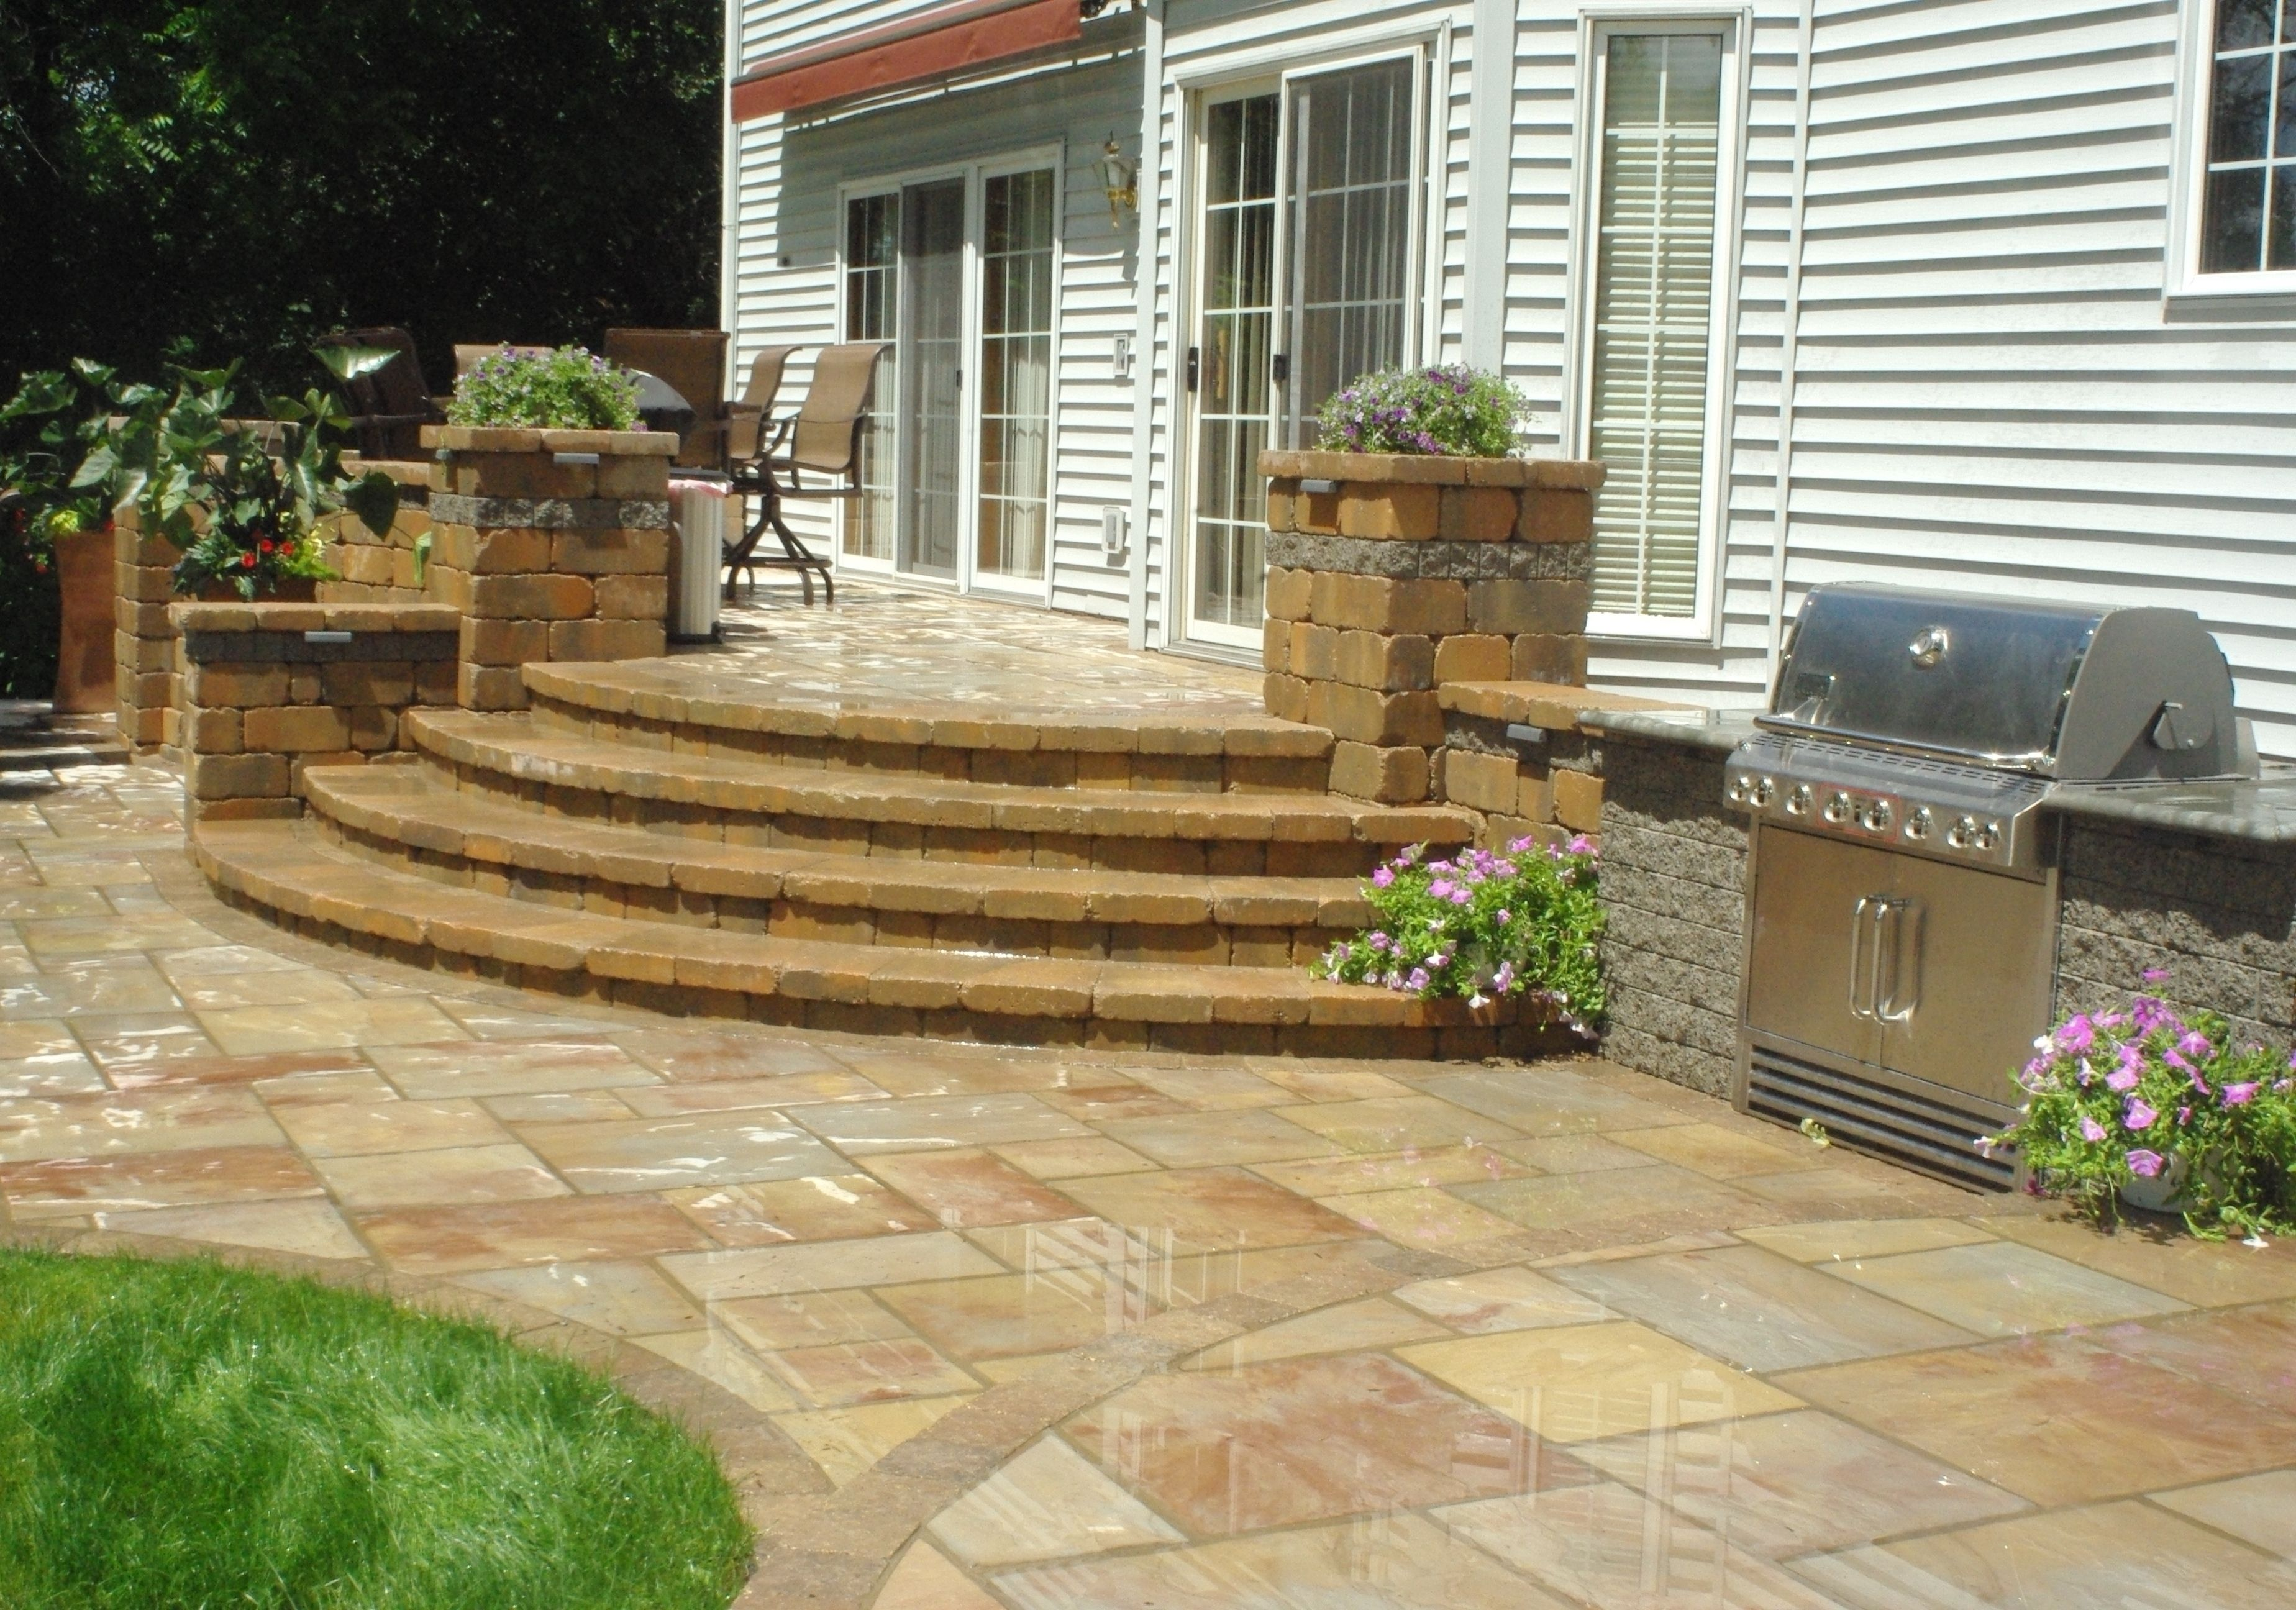 find this pin and more on backyard plans outdoor landscaping ideas - Outdoor Patio Landscaping Ideas